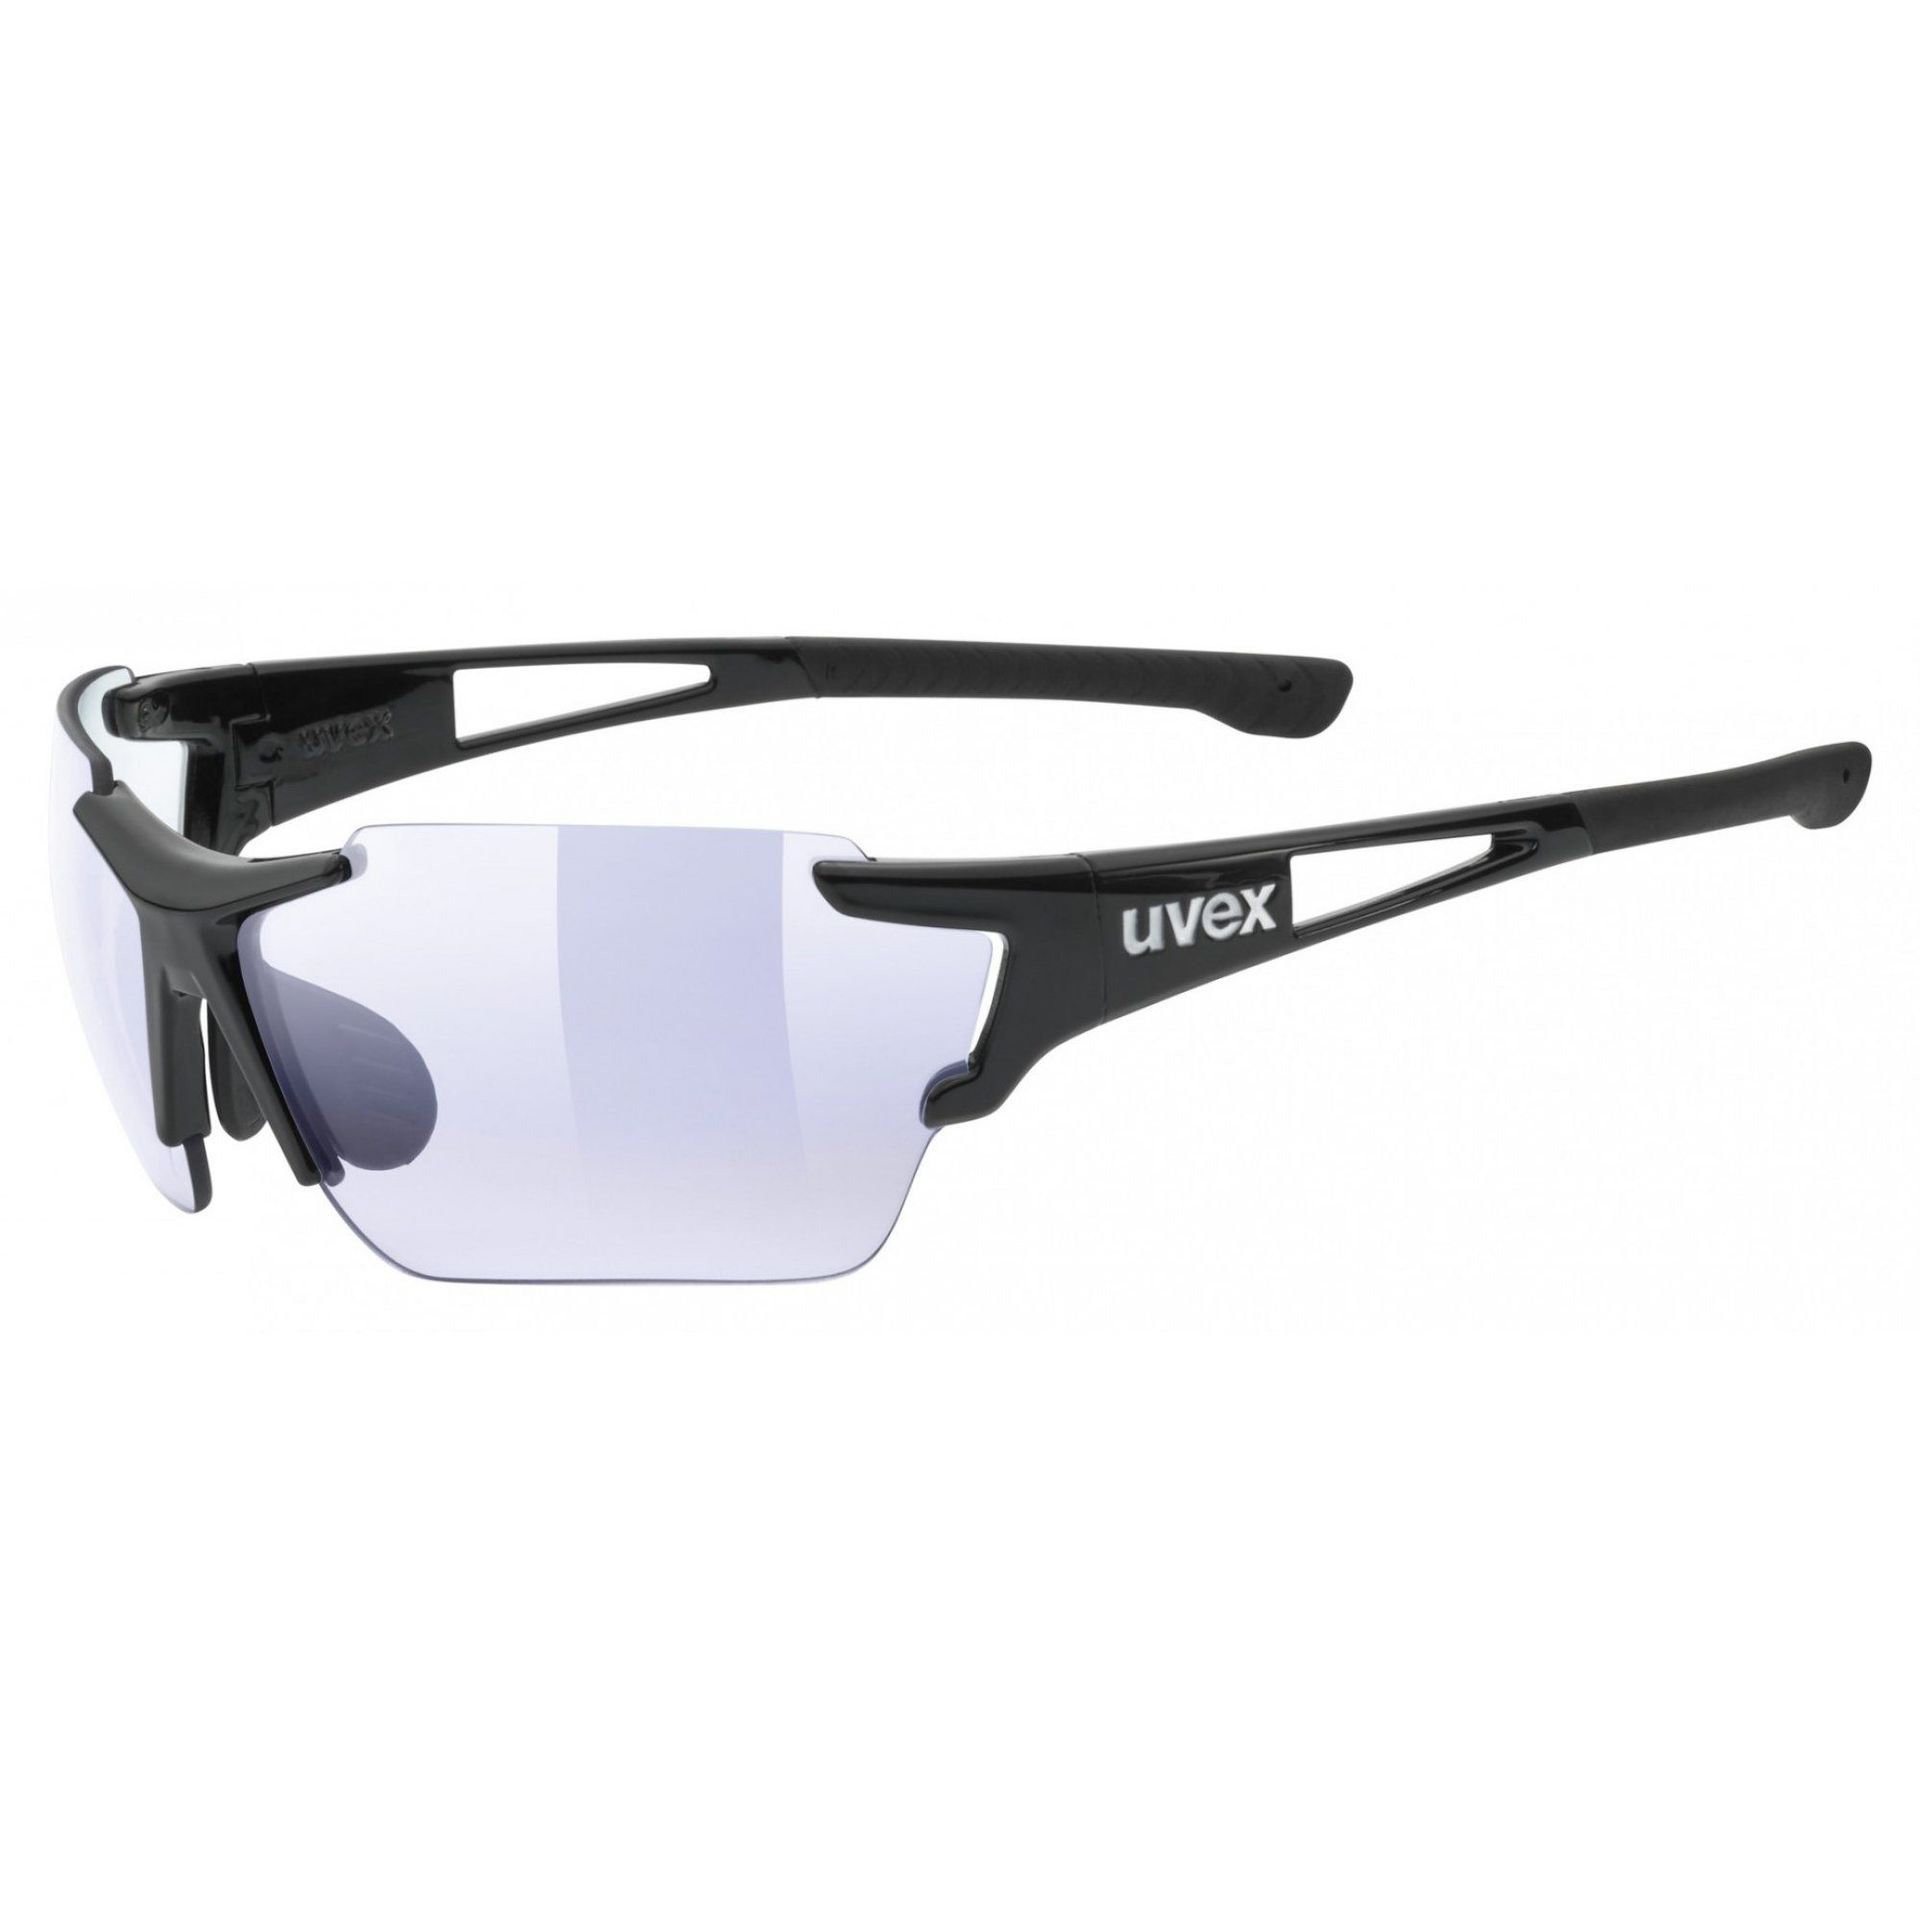 OKULARY UVEX SPORTSTYLE 803 RACE VM 2017 BLACK